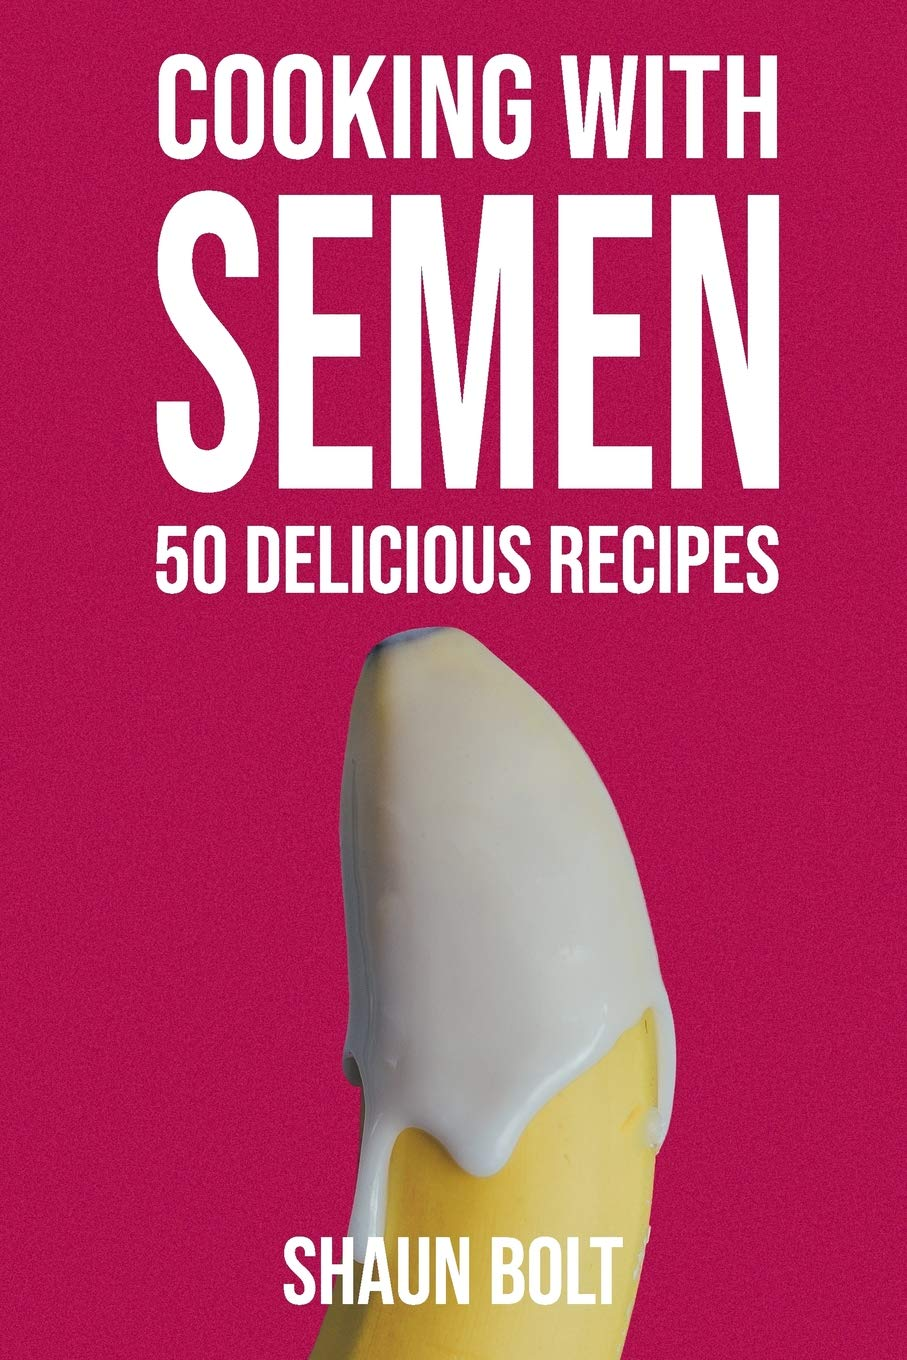 Cooking Semen Delicious Recipes Inappropriate product image